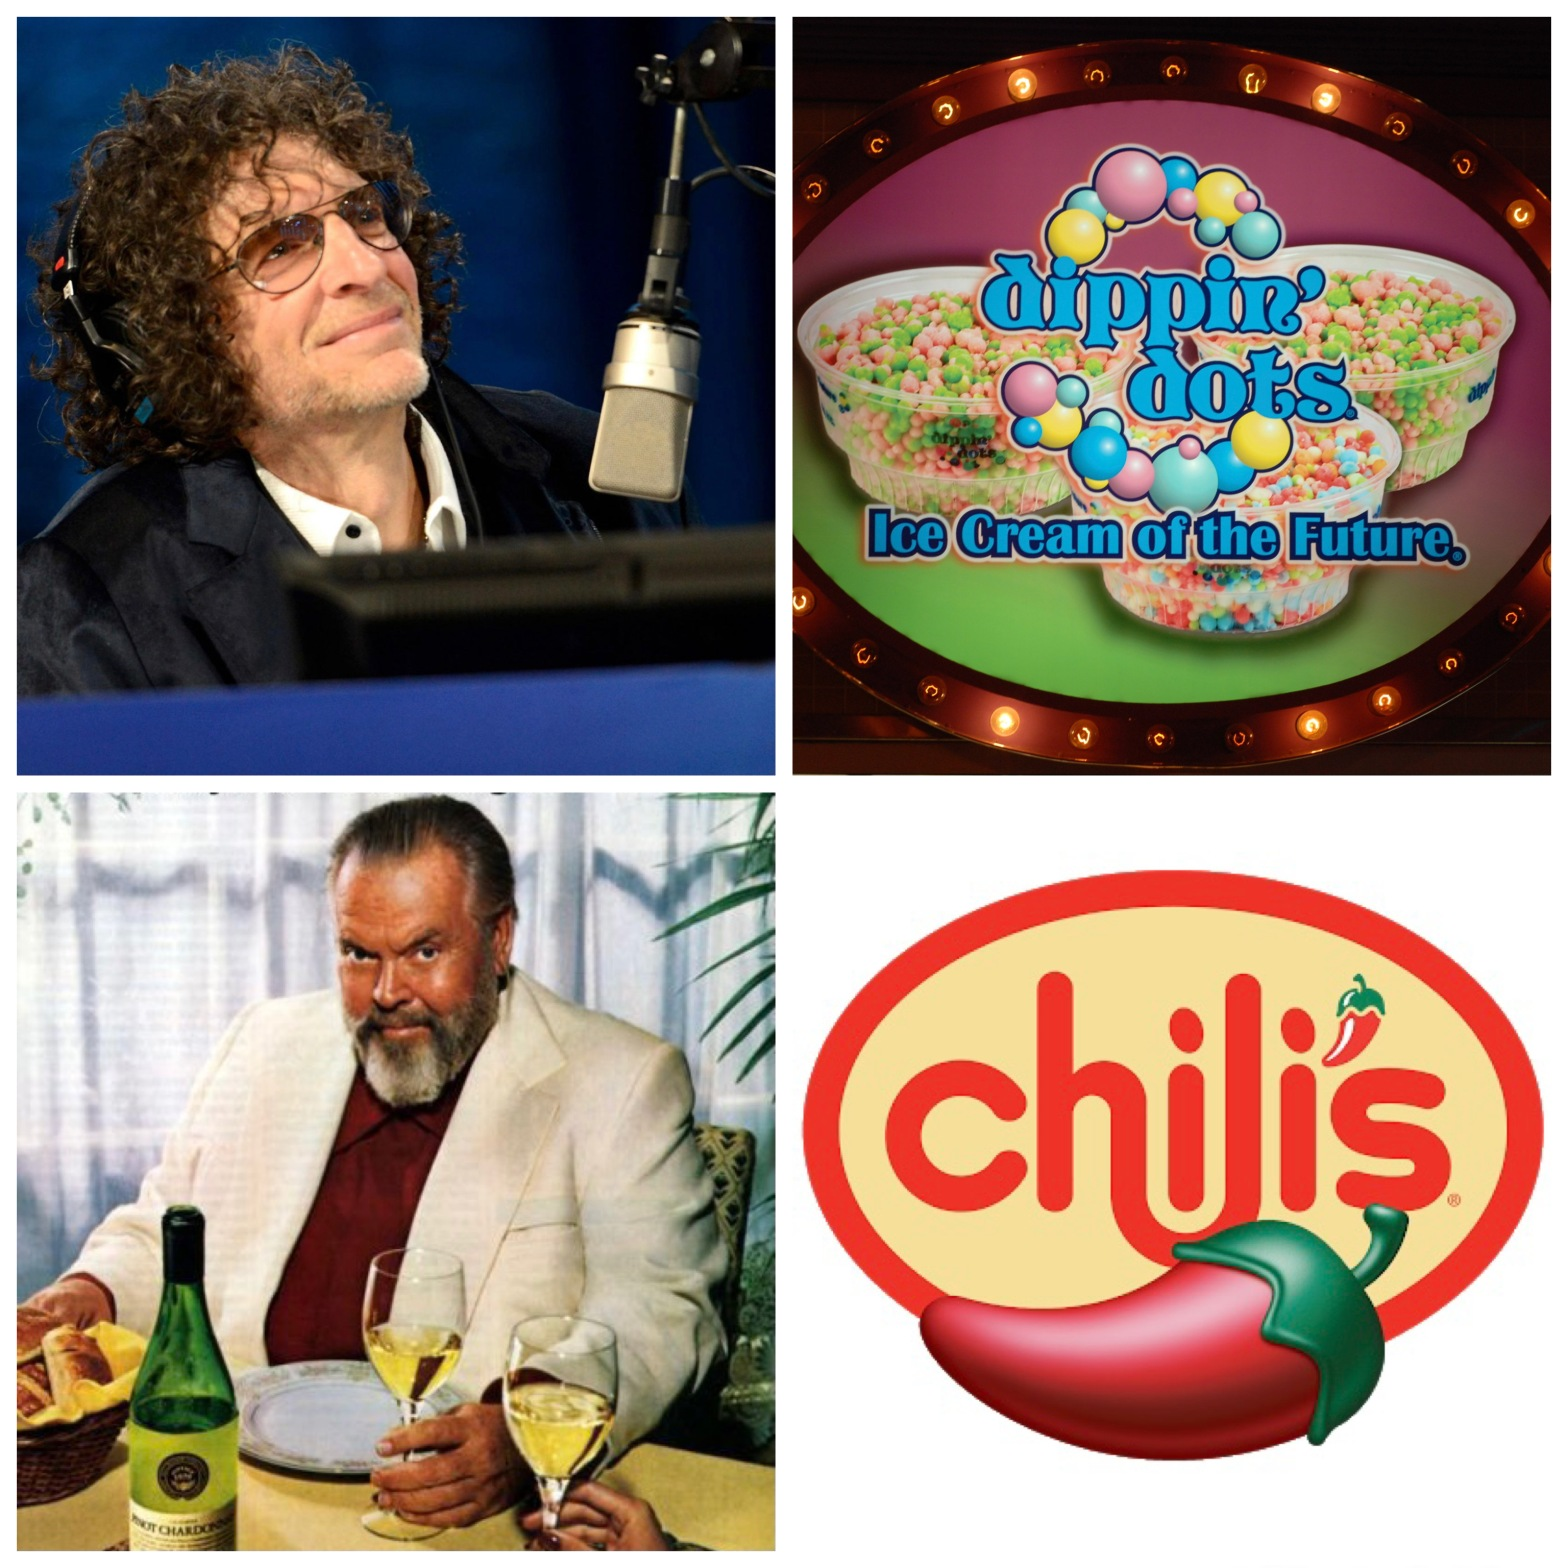 Howard Stern, Dippin' Dots, Orson Welles, and Chili's.